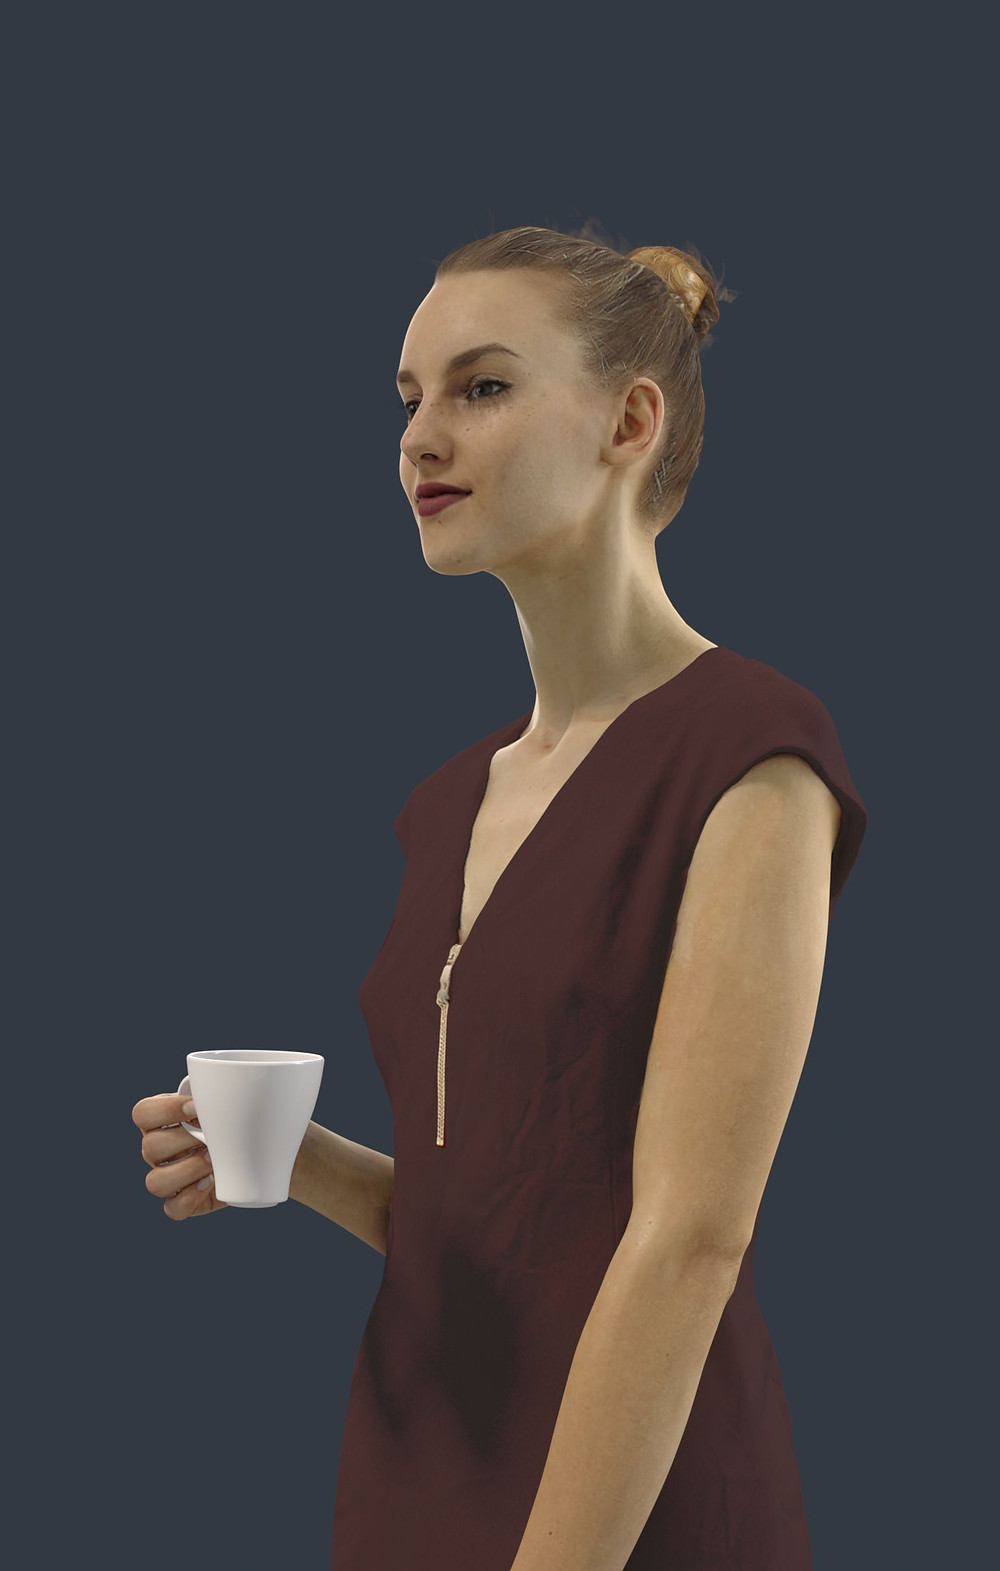 3d person rendered